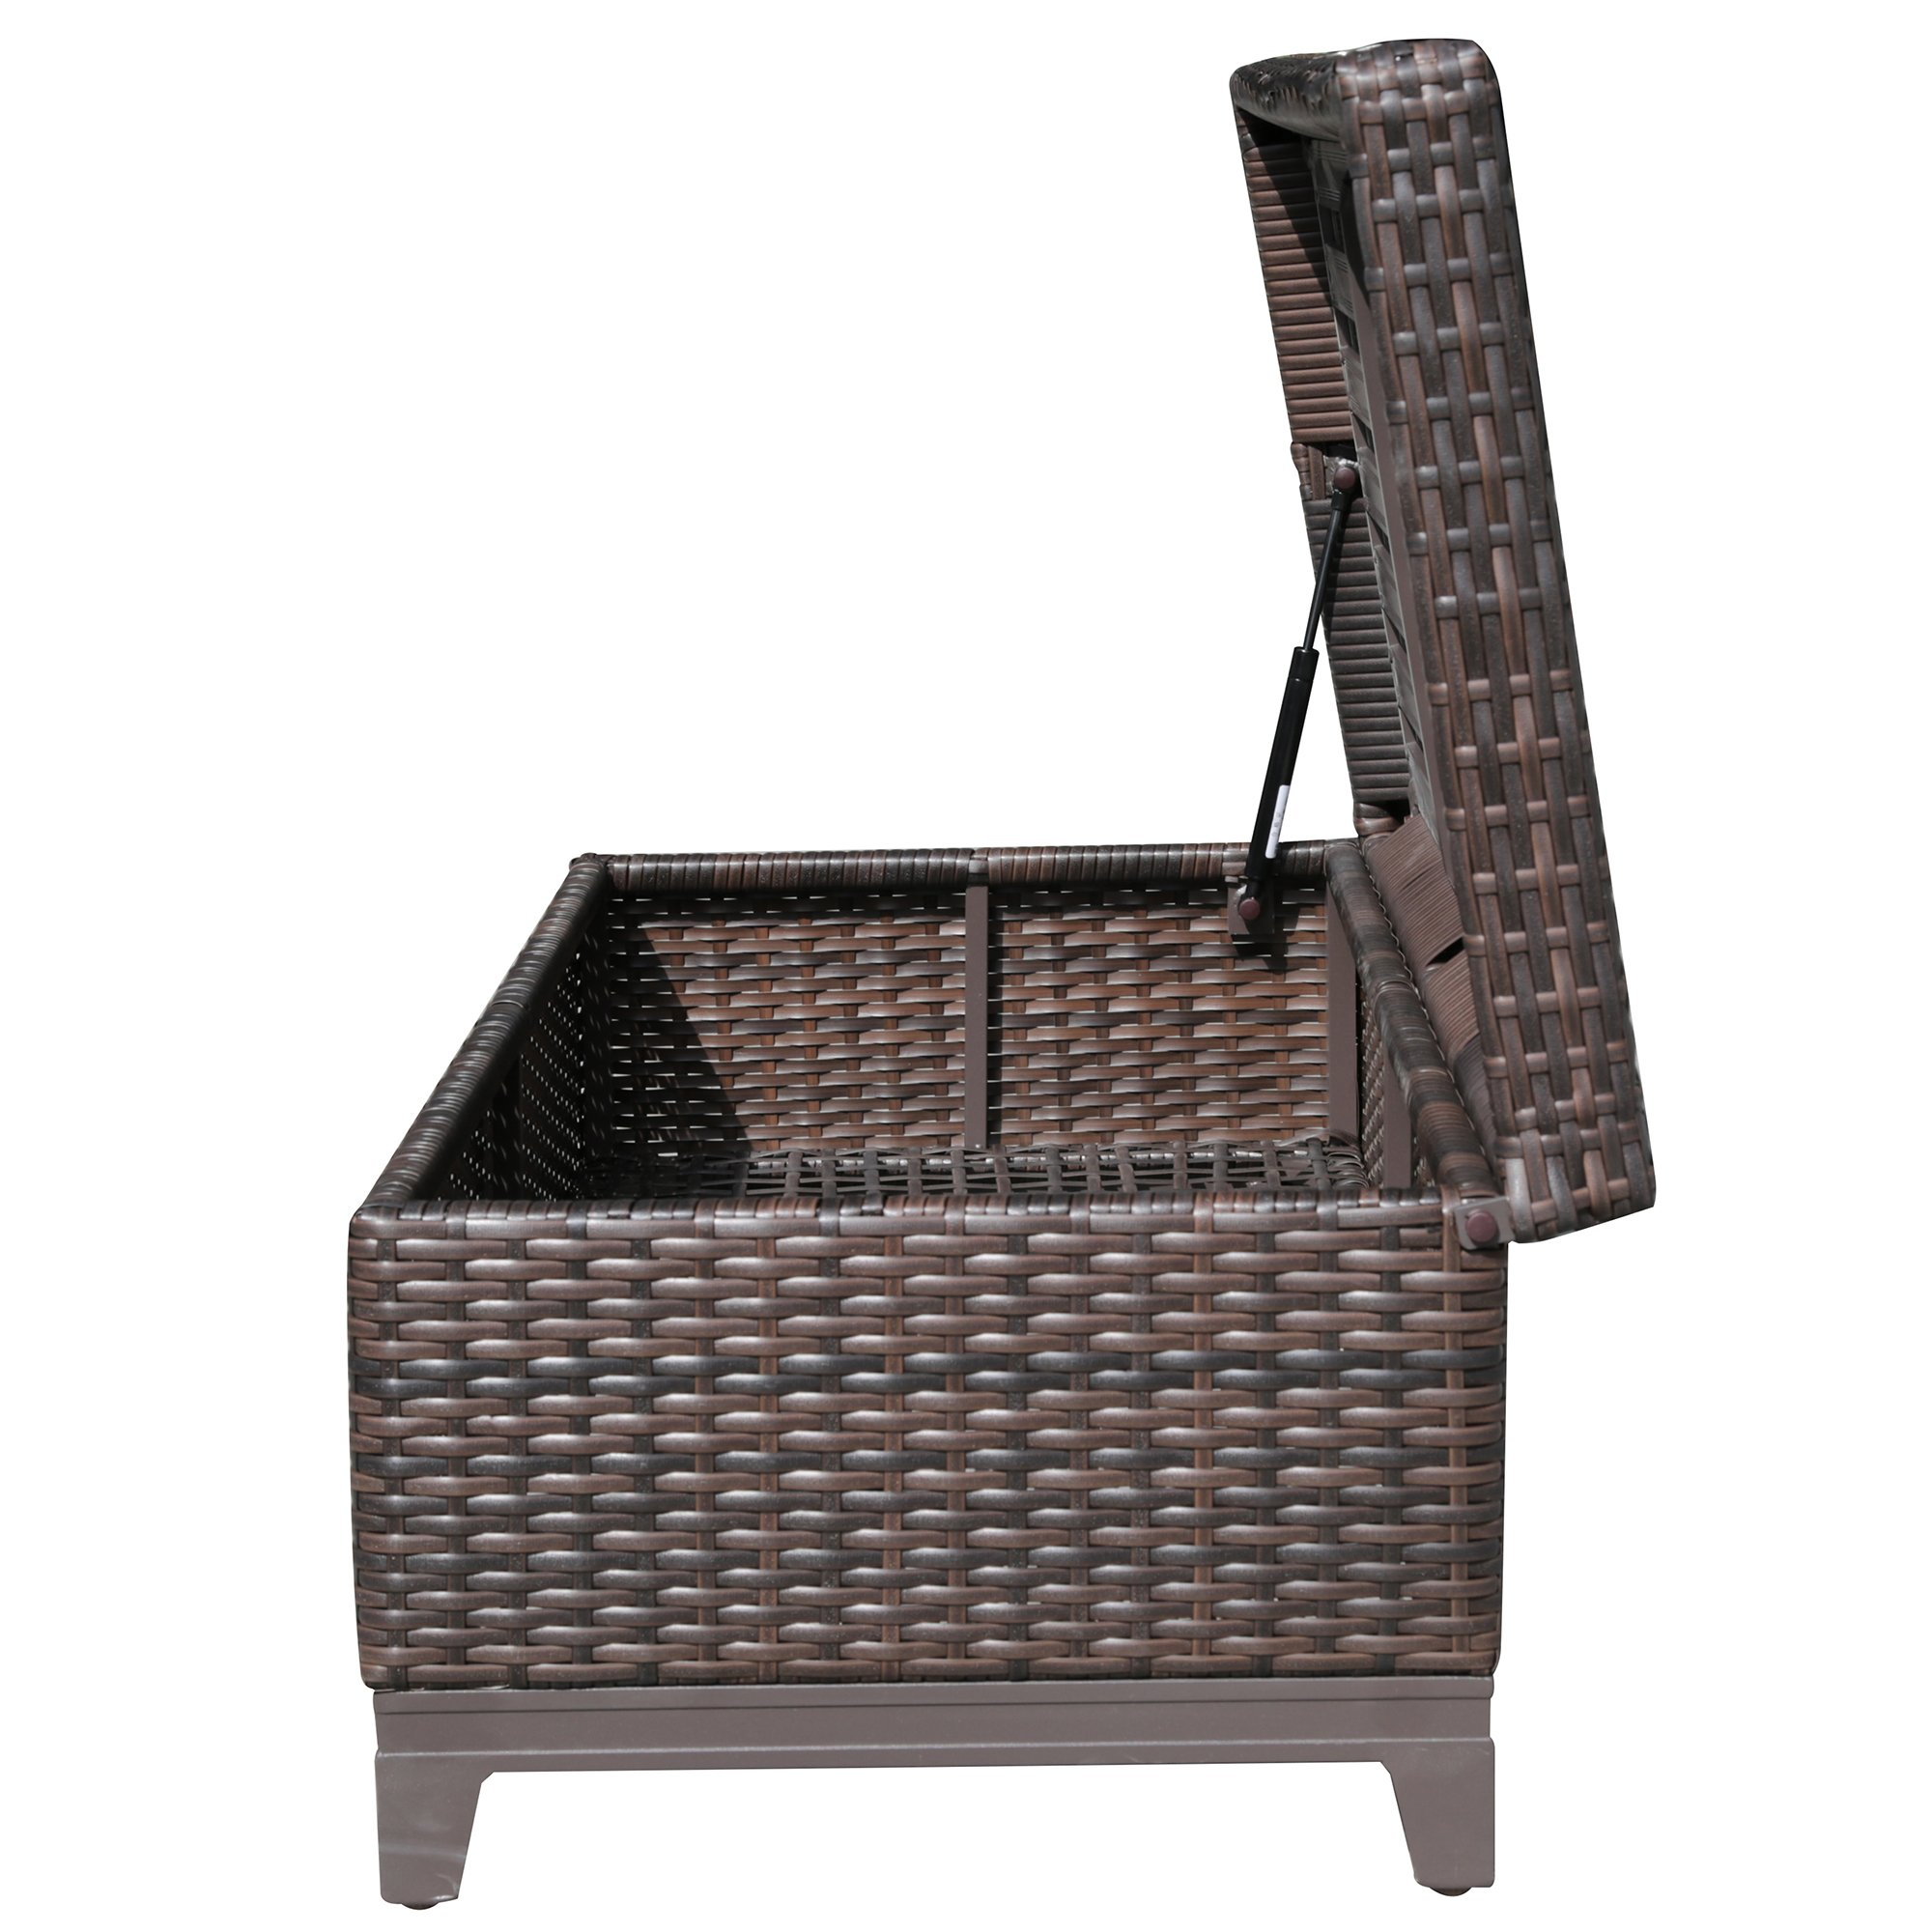 PATIOROMA Outdoor Patio Aluminum Frame Wicker Cushion Storage Ottoman Bench with Seat Cushion, Espresso Brown by PATIOROMA (Image #6)